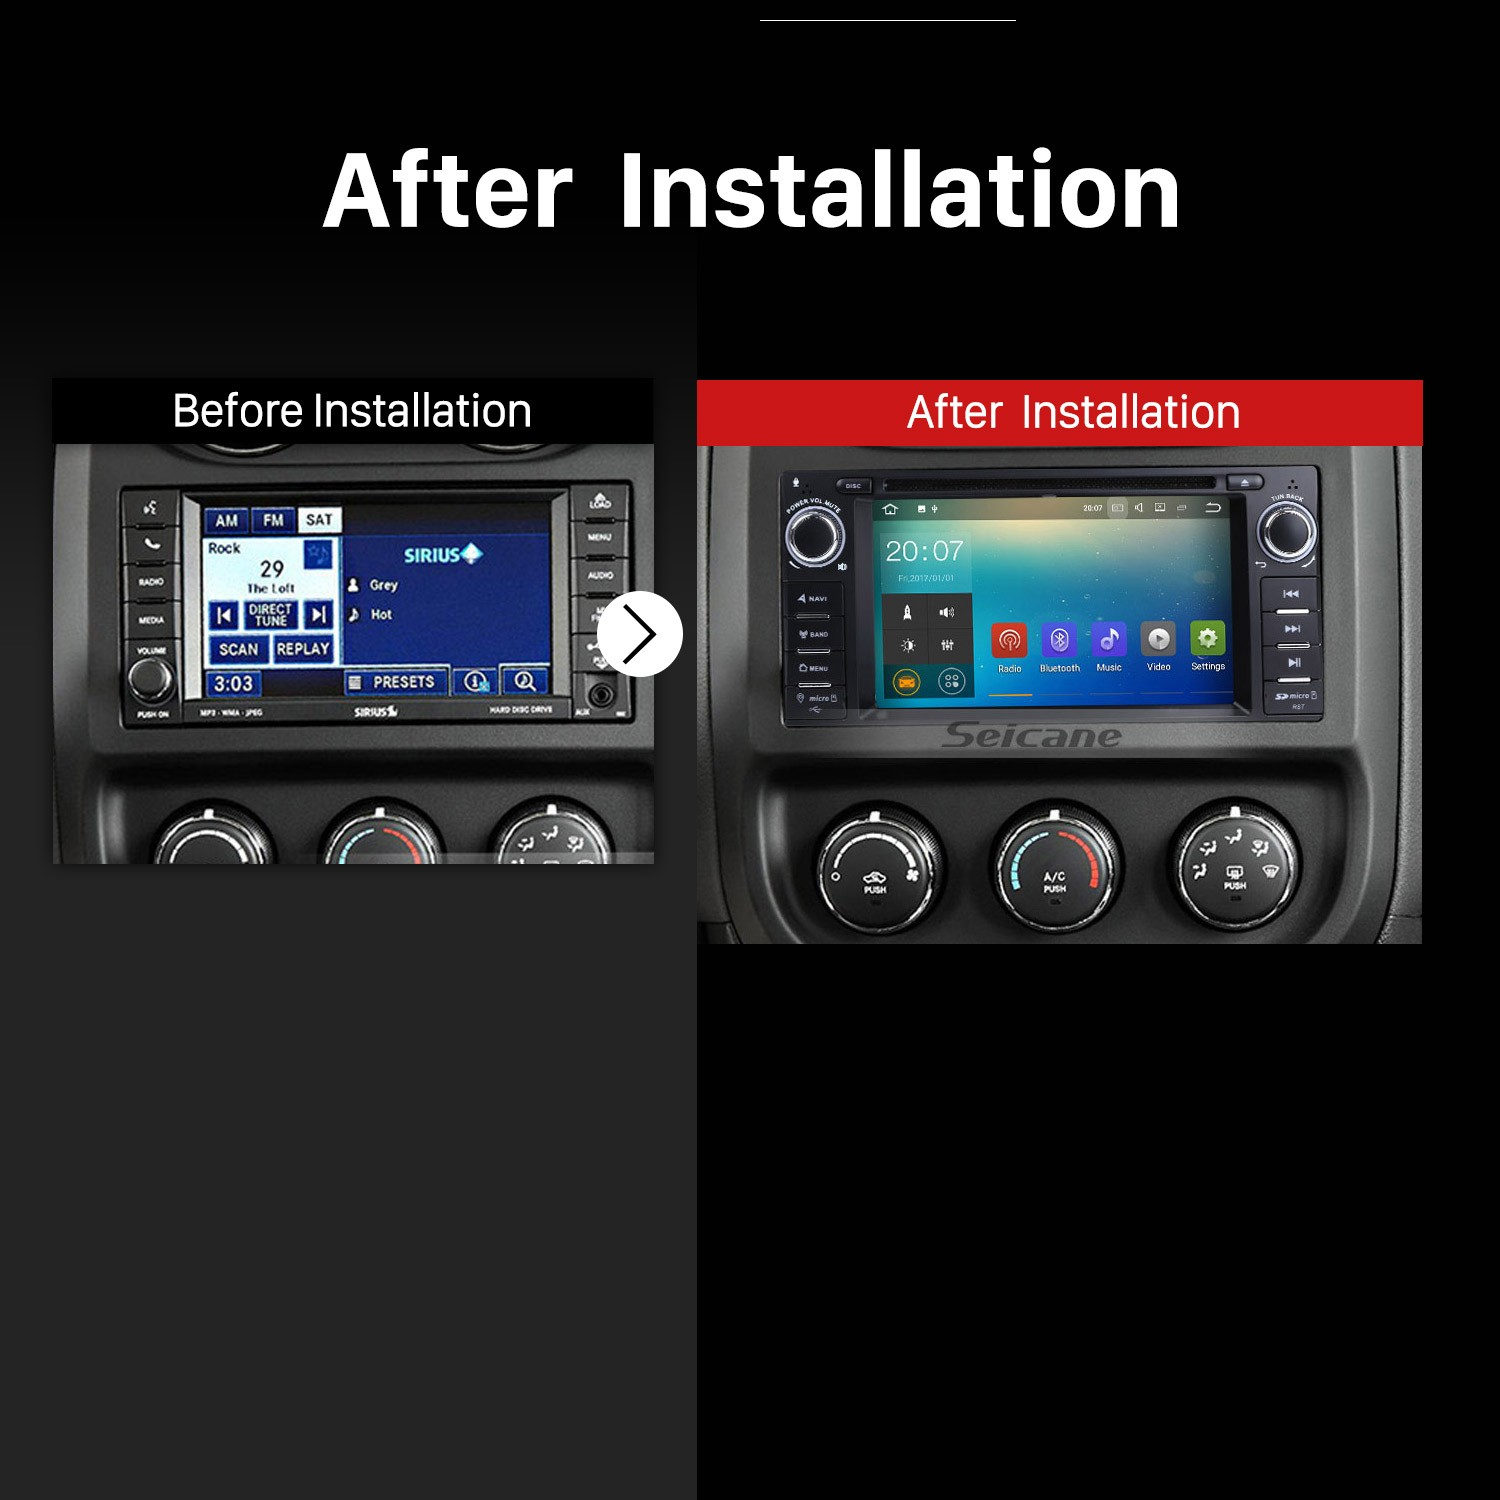 2008 2009 2010 Jeep Commander Car Radio after installation